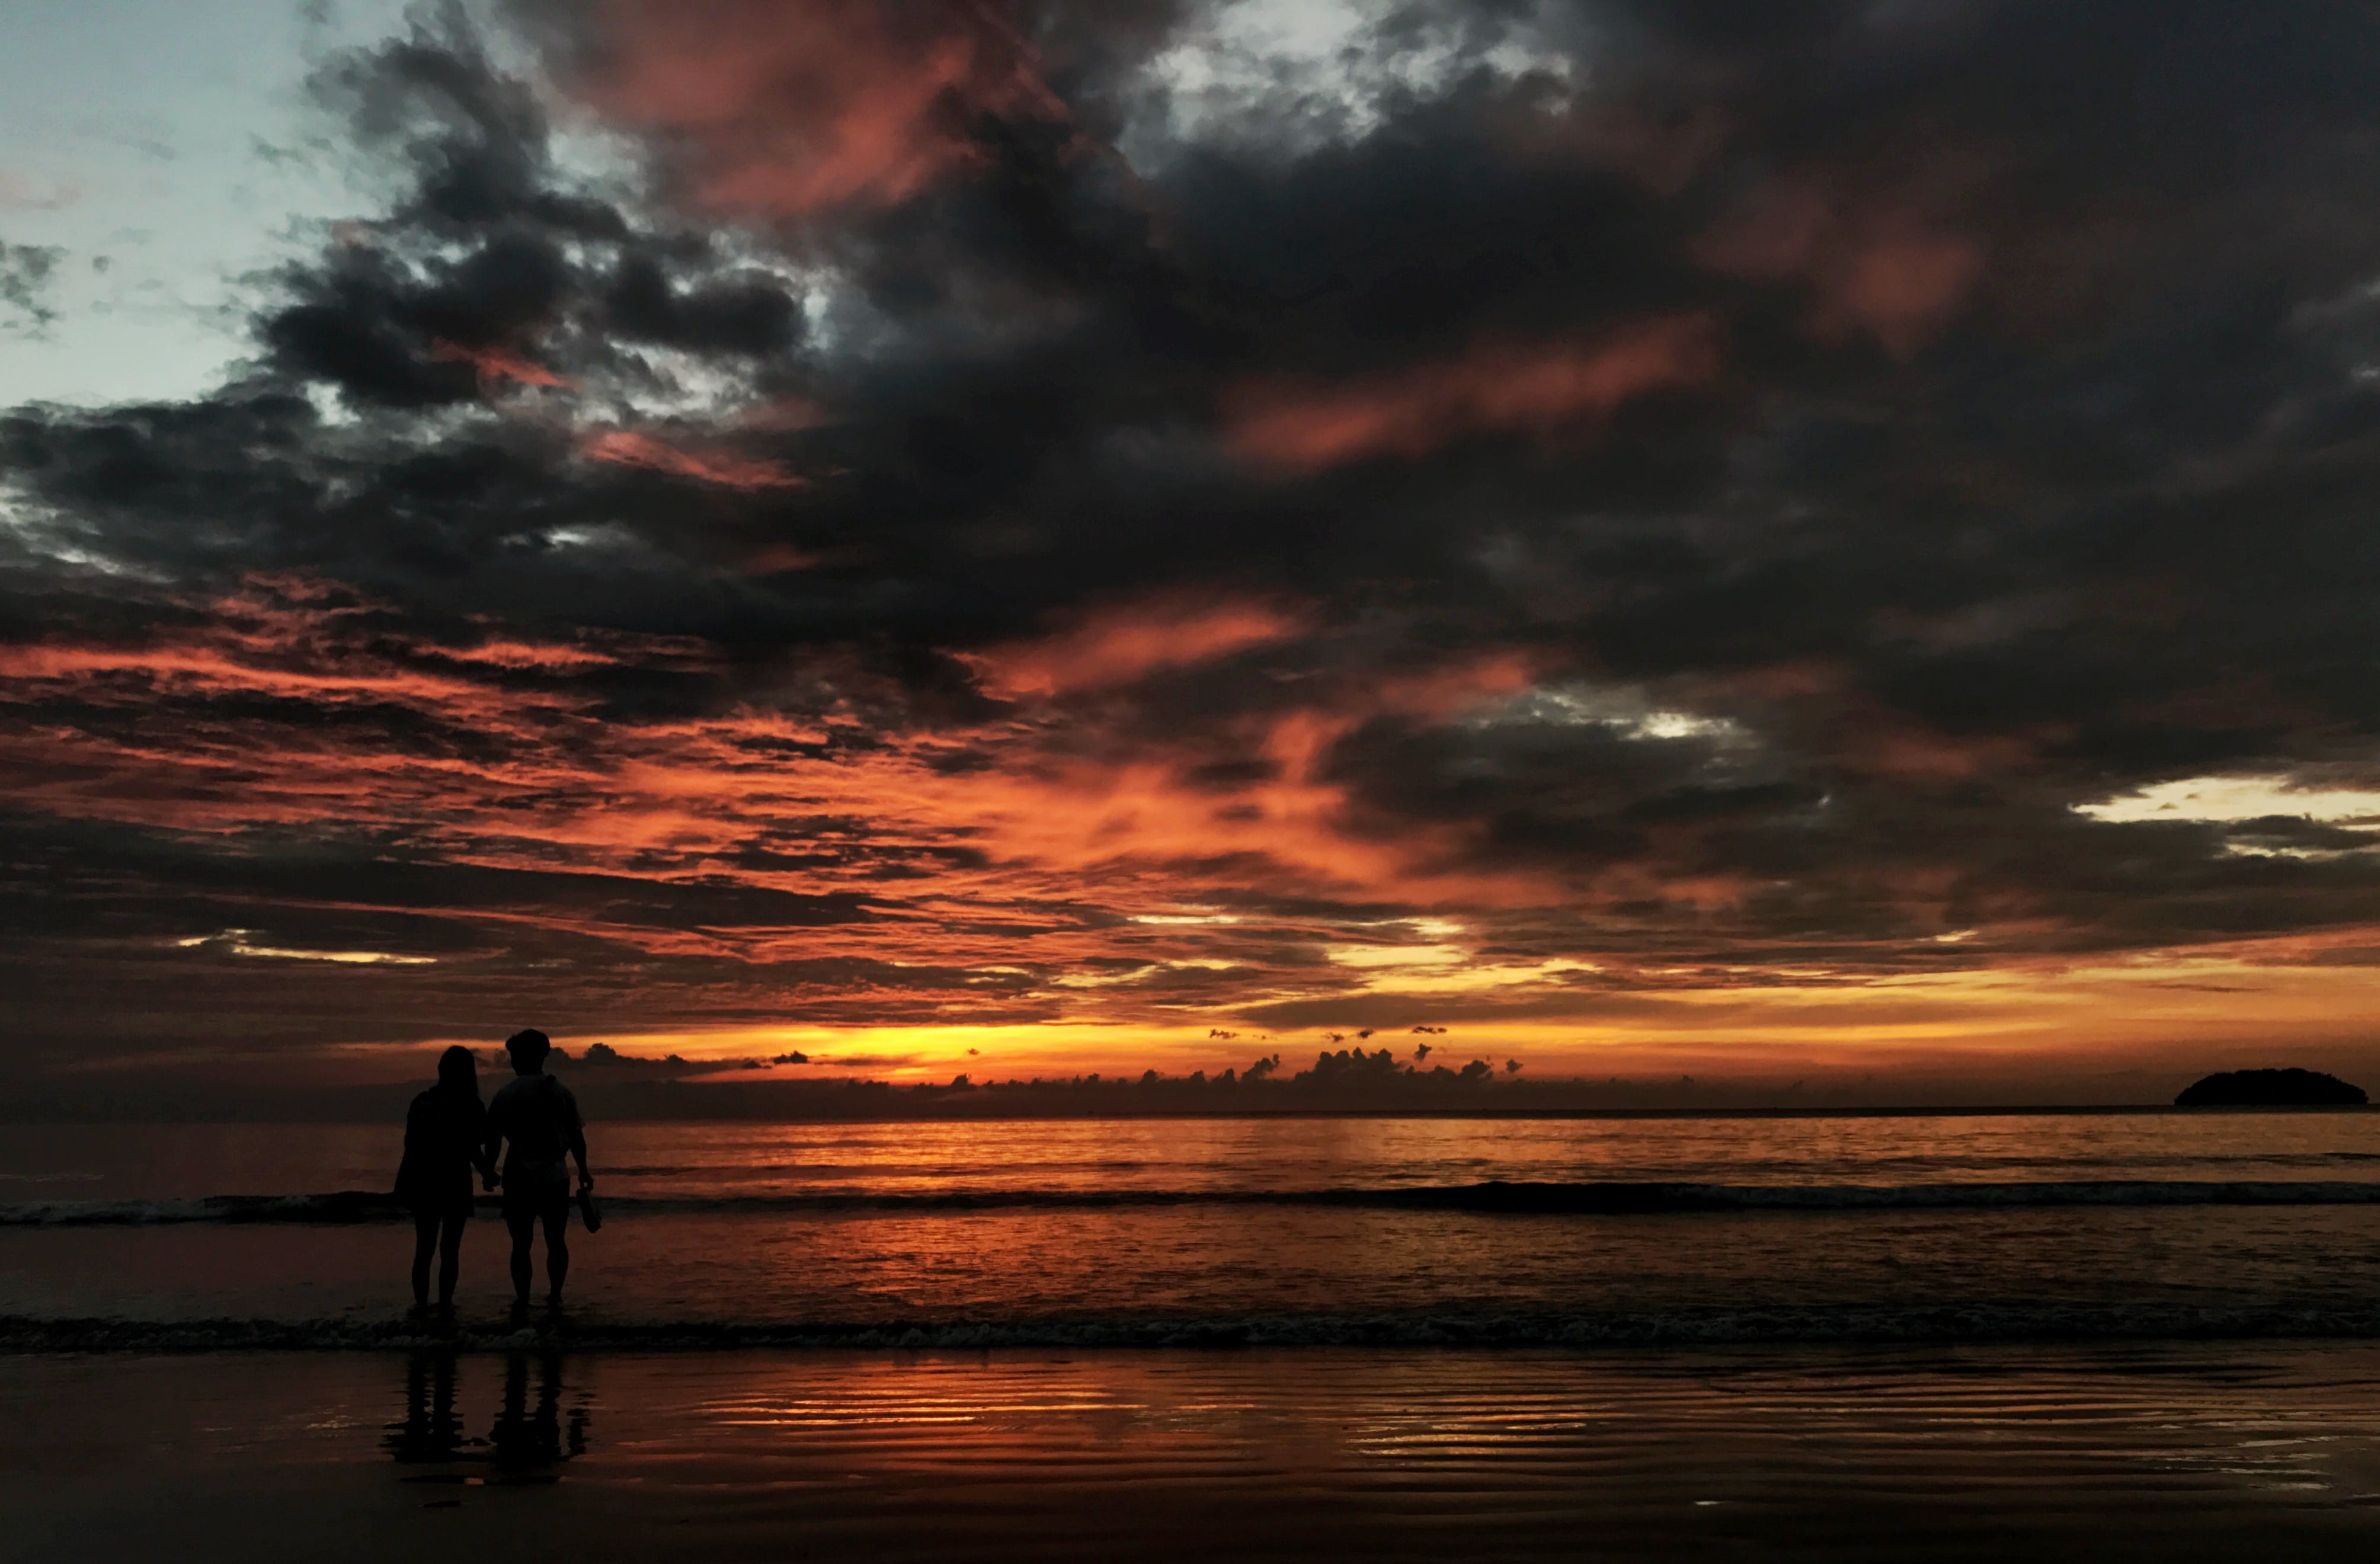 Two Person Standing on Beach Silhouette Photo